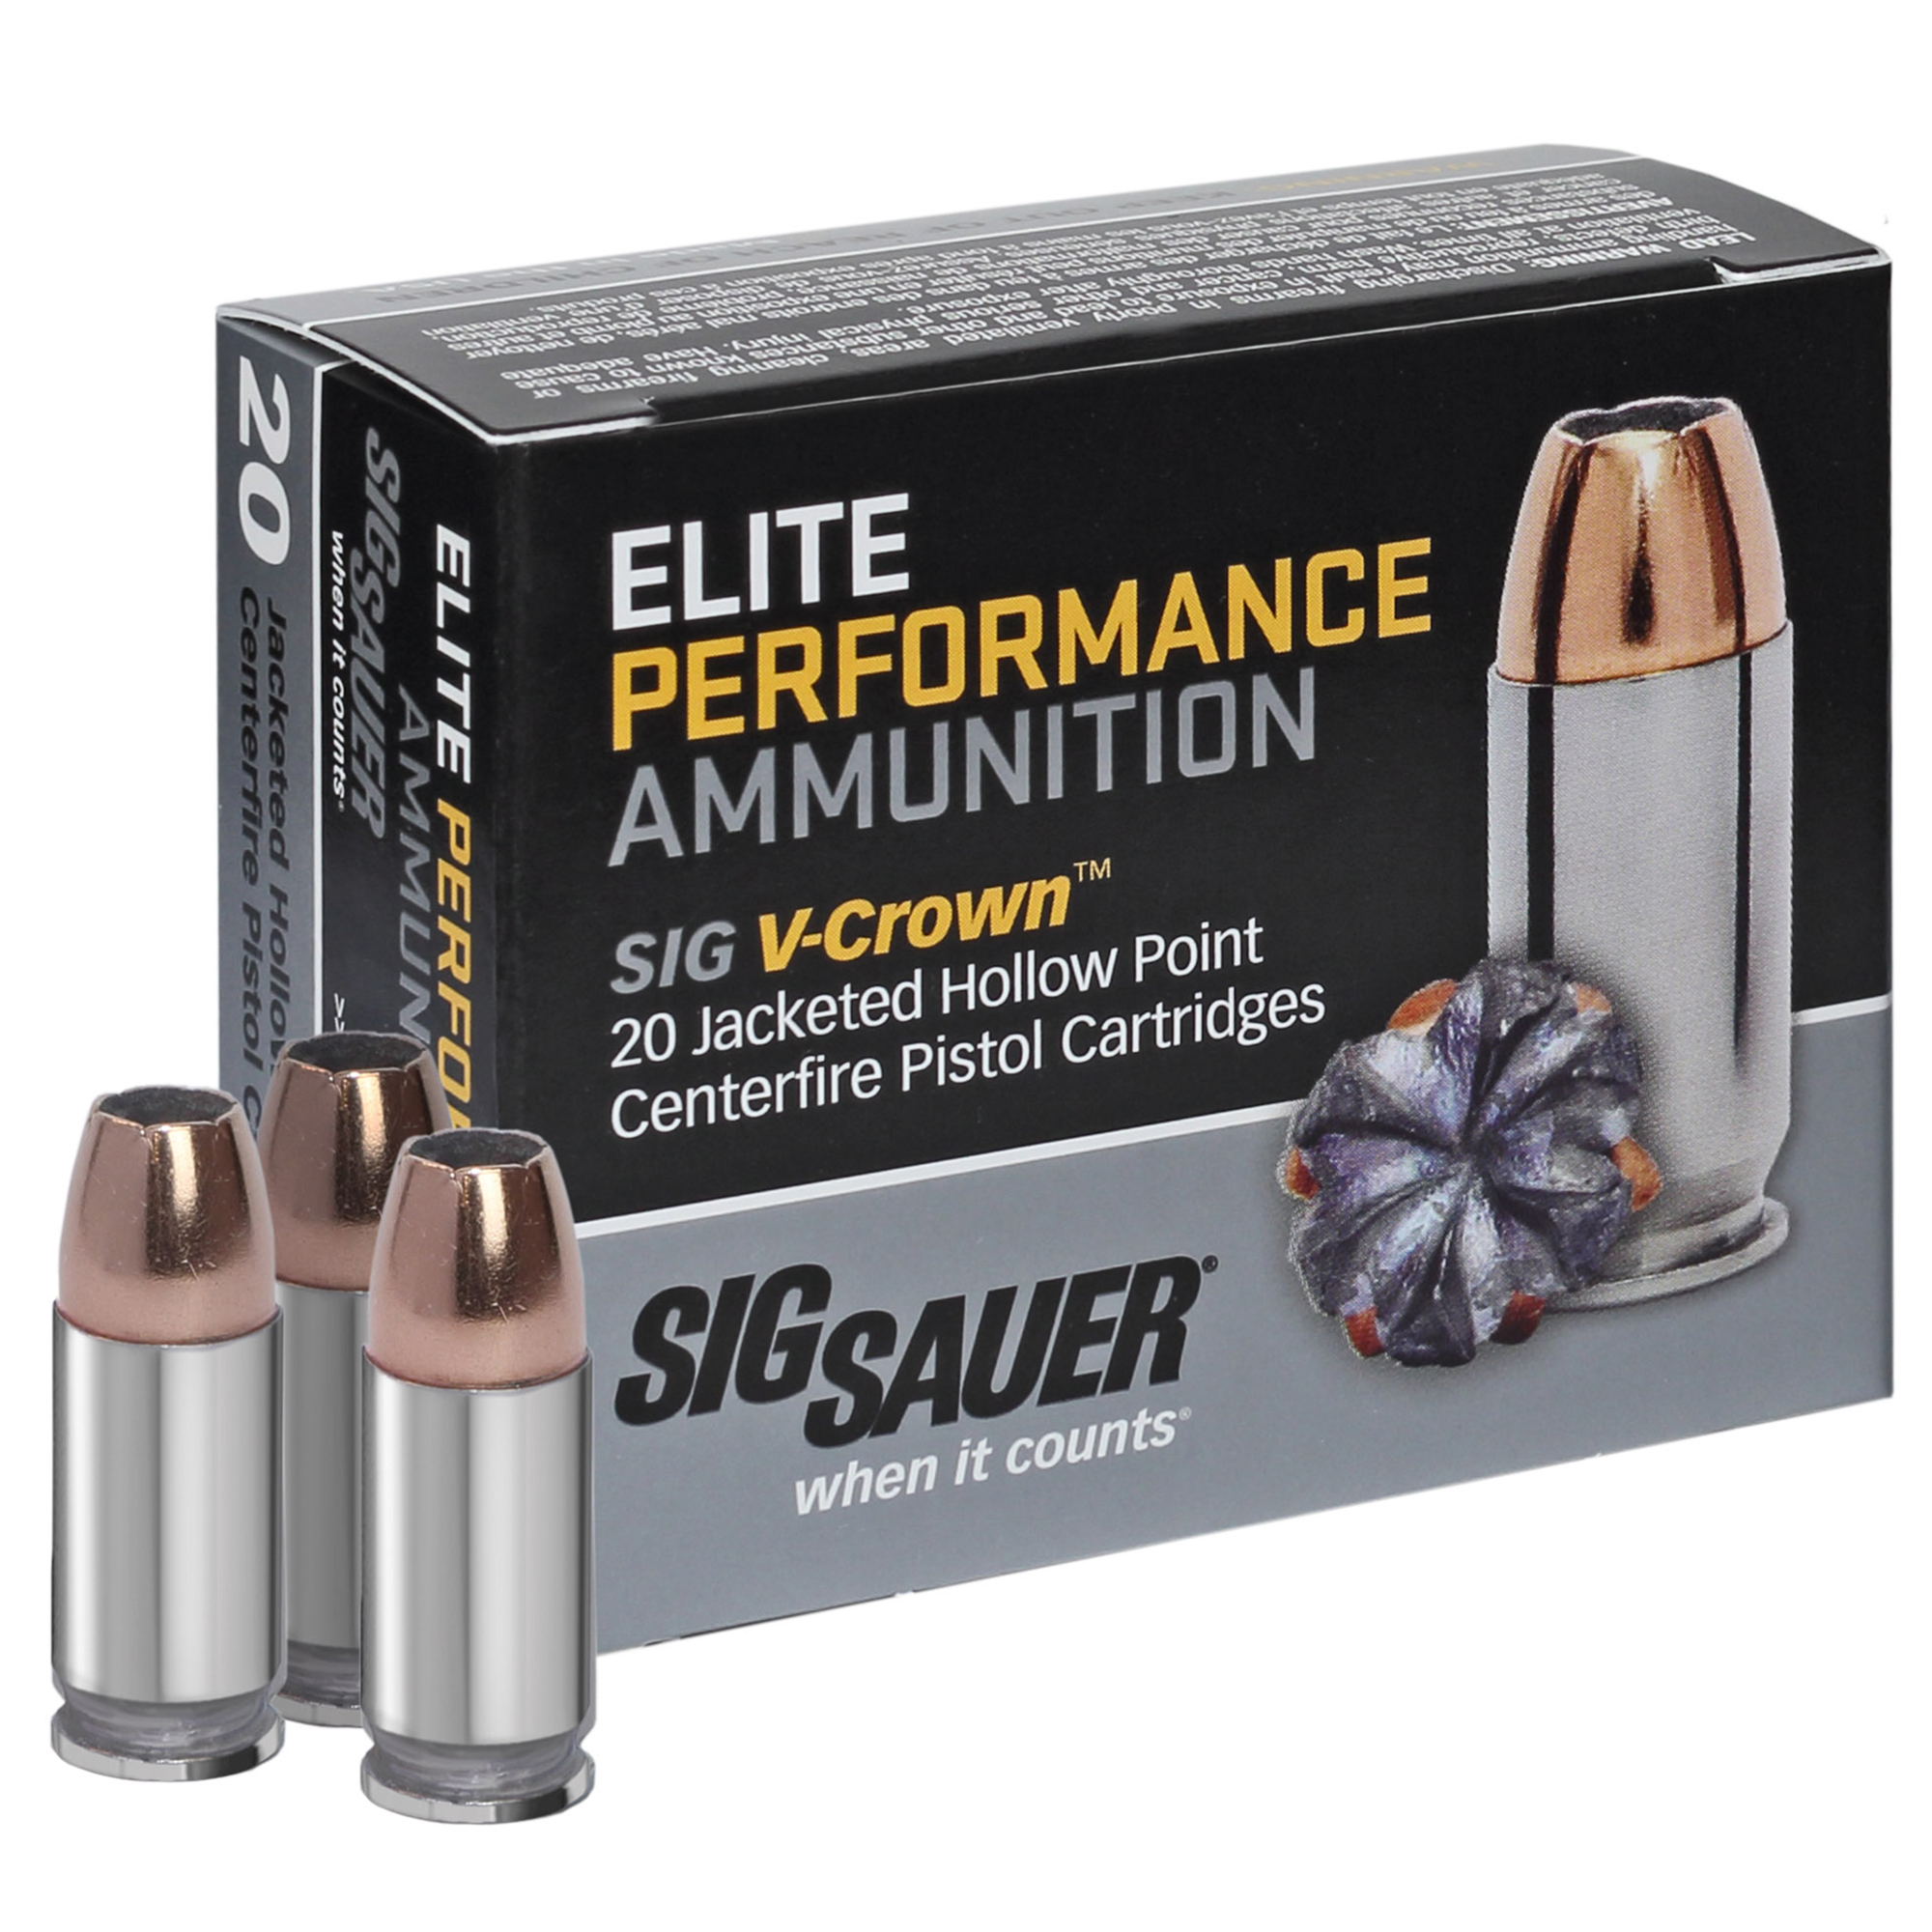 SIG Sauer Elite Performance V-Crown Ammo, 9mm Luger, 115-gr., JHP